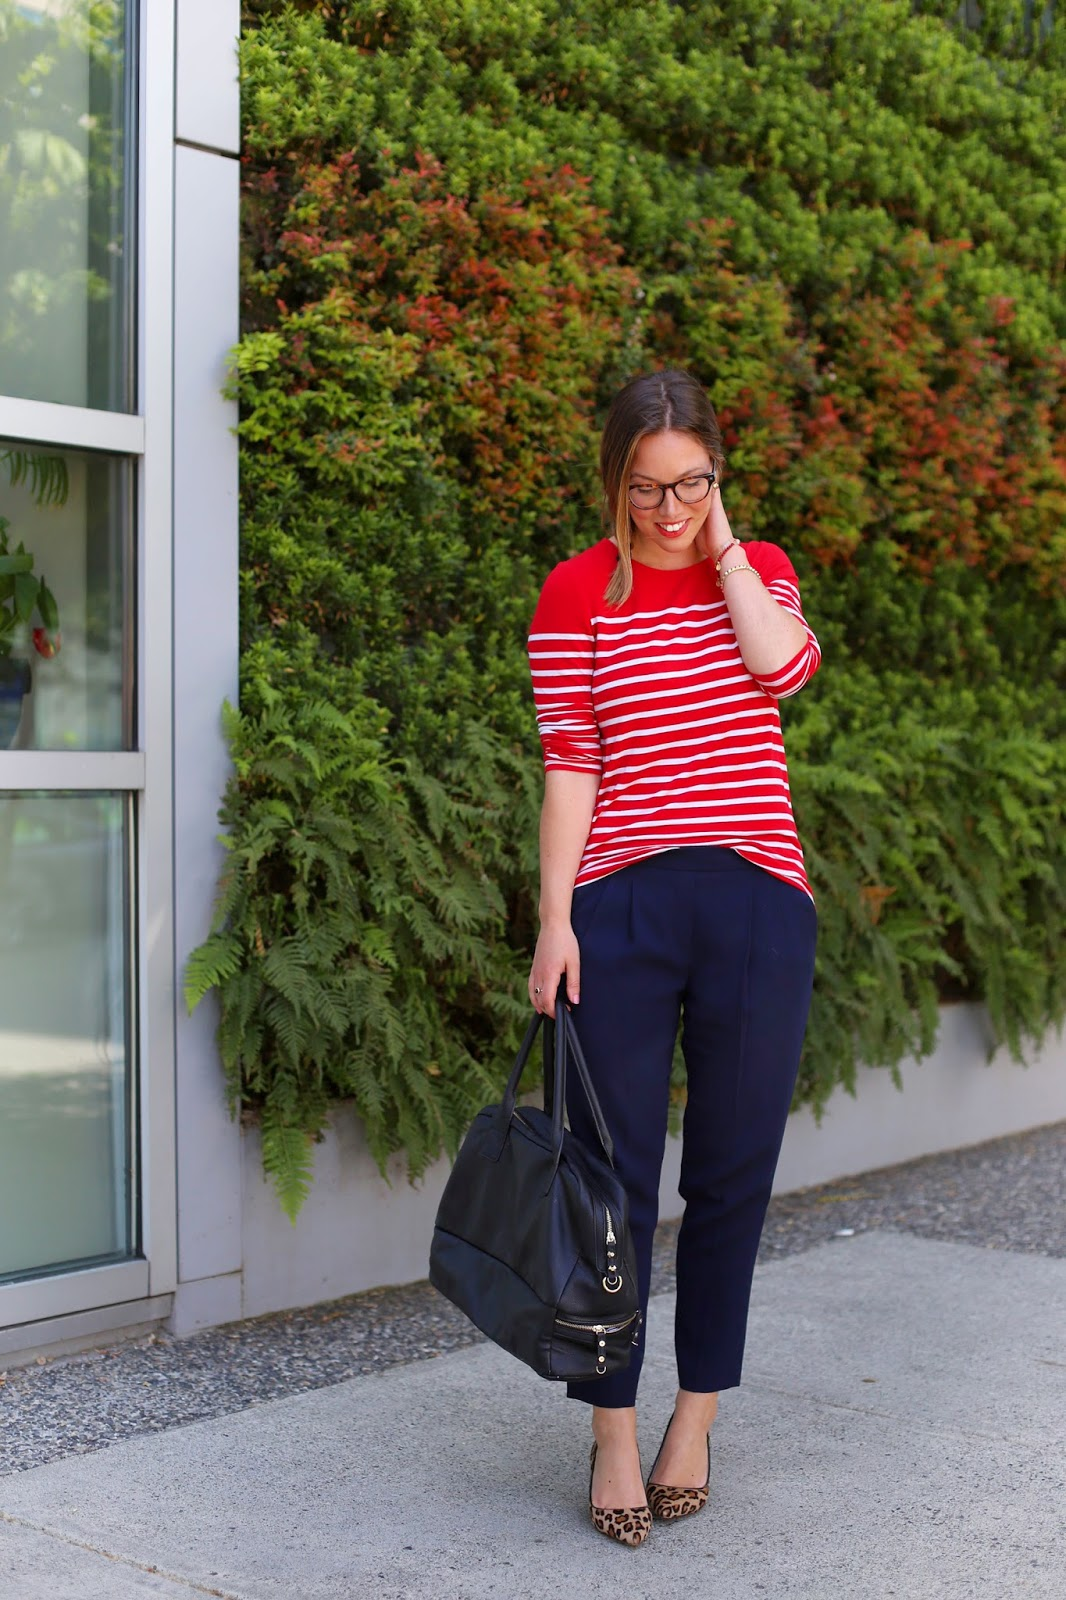 wheres-waldo-to-vogue-or-bust-5-2